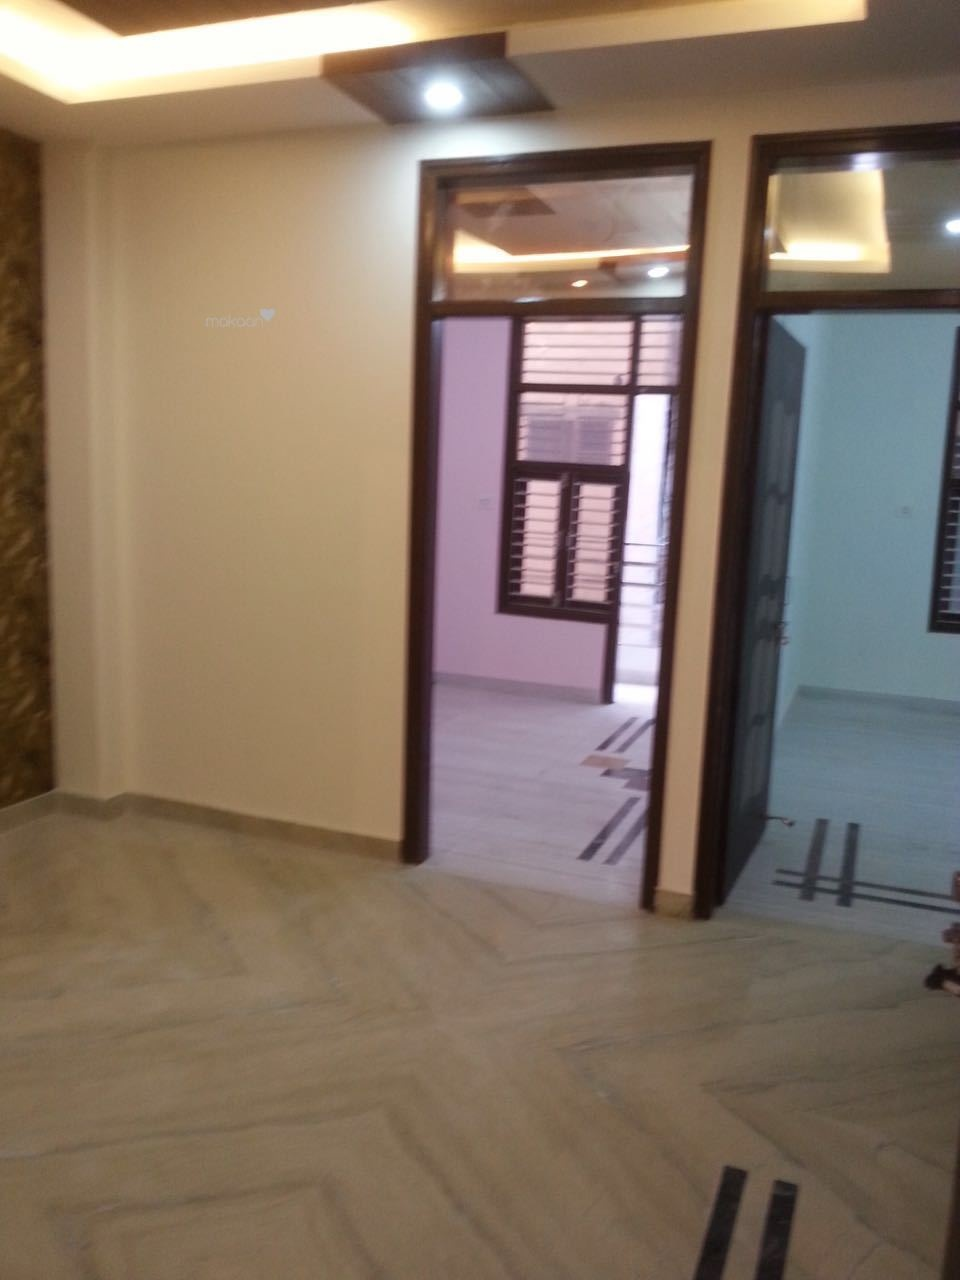 495 sq ft 2BHK 2BHK+2T (495 sq ft) Property By Partap Properties In Project, Uttam Nagar